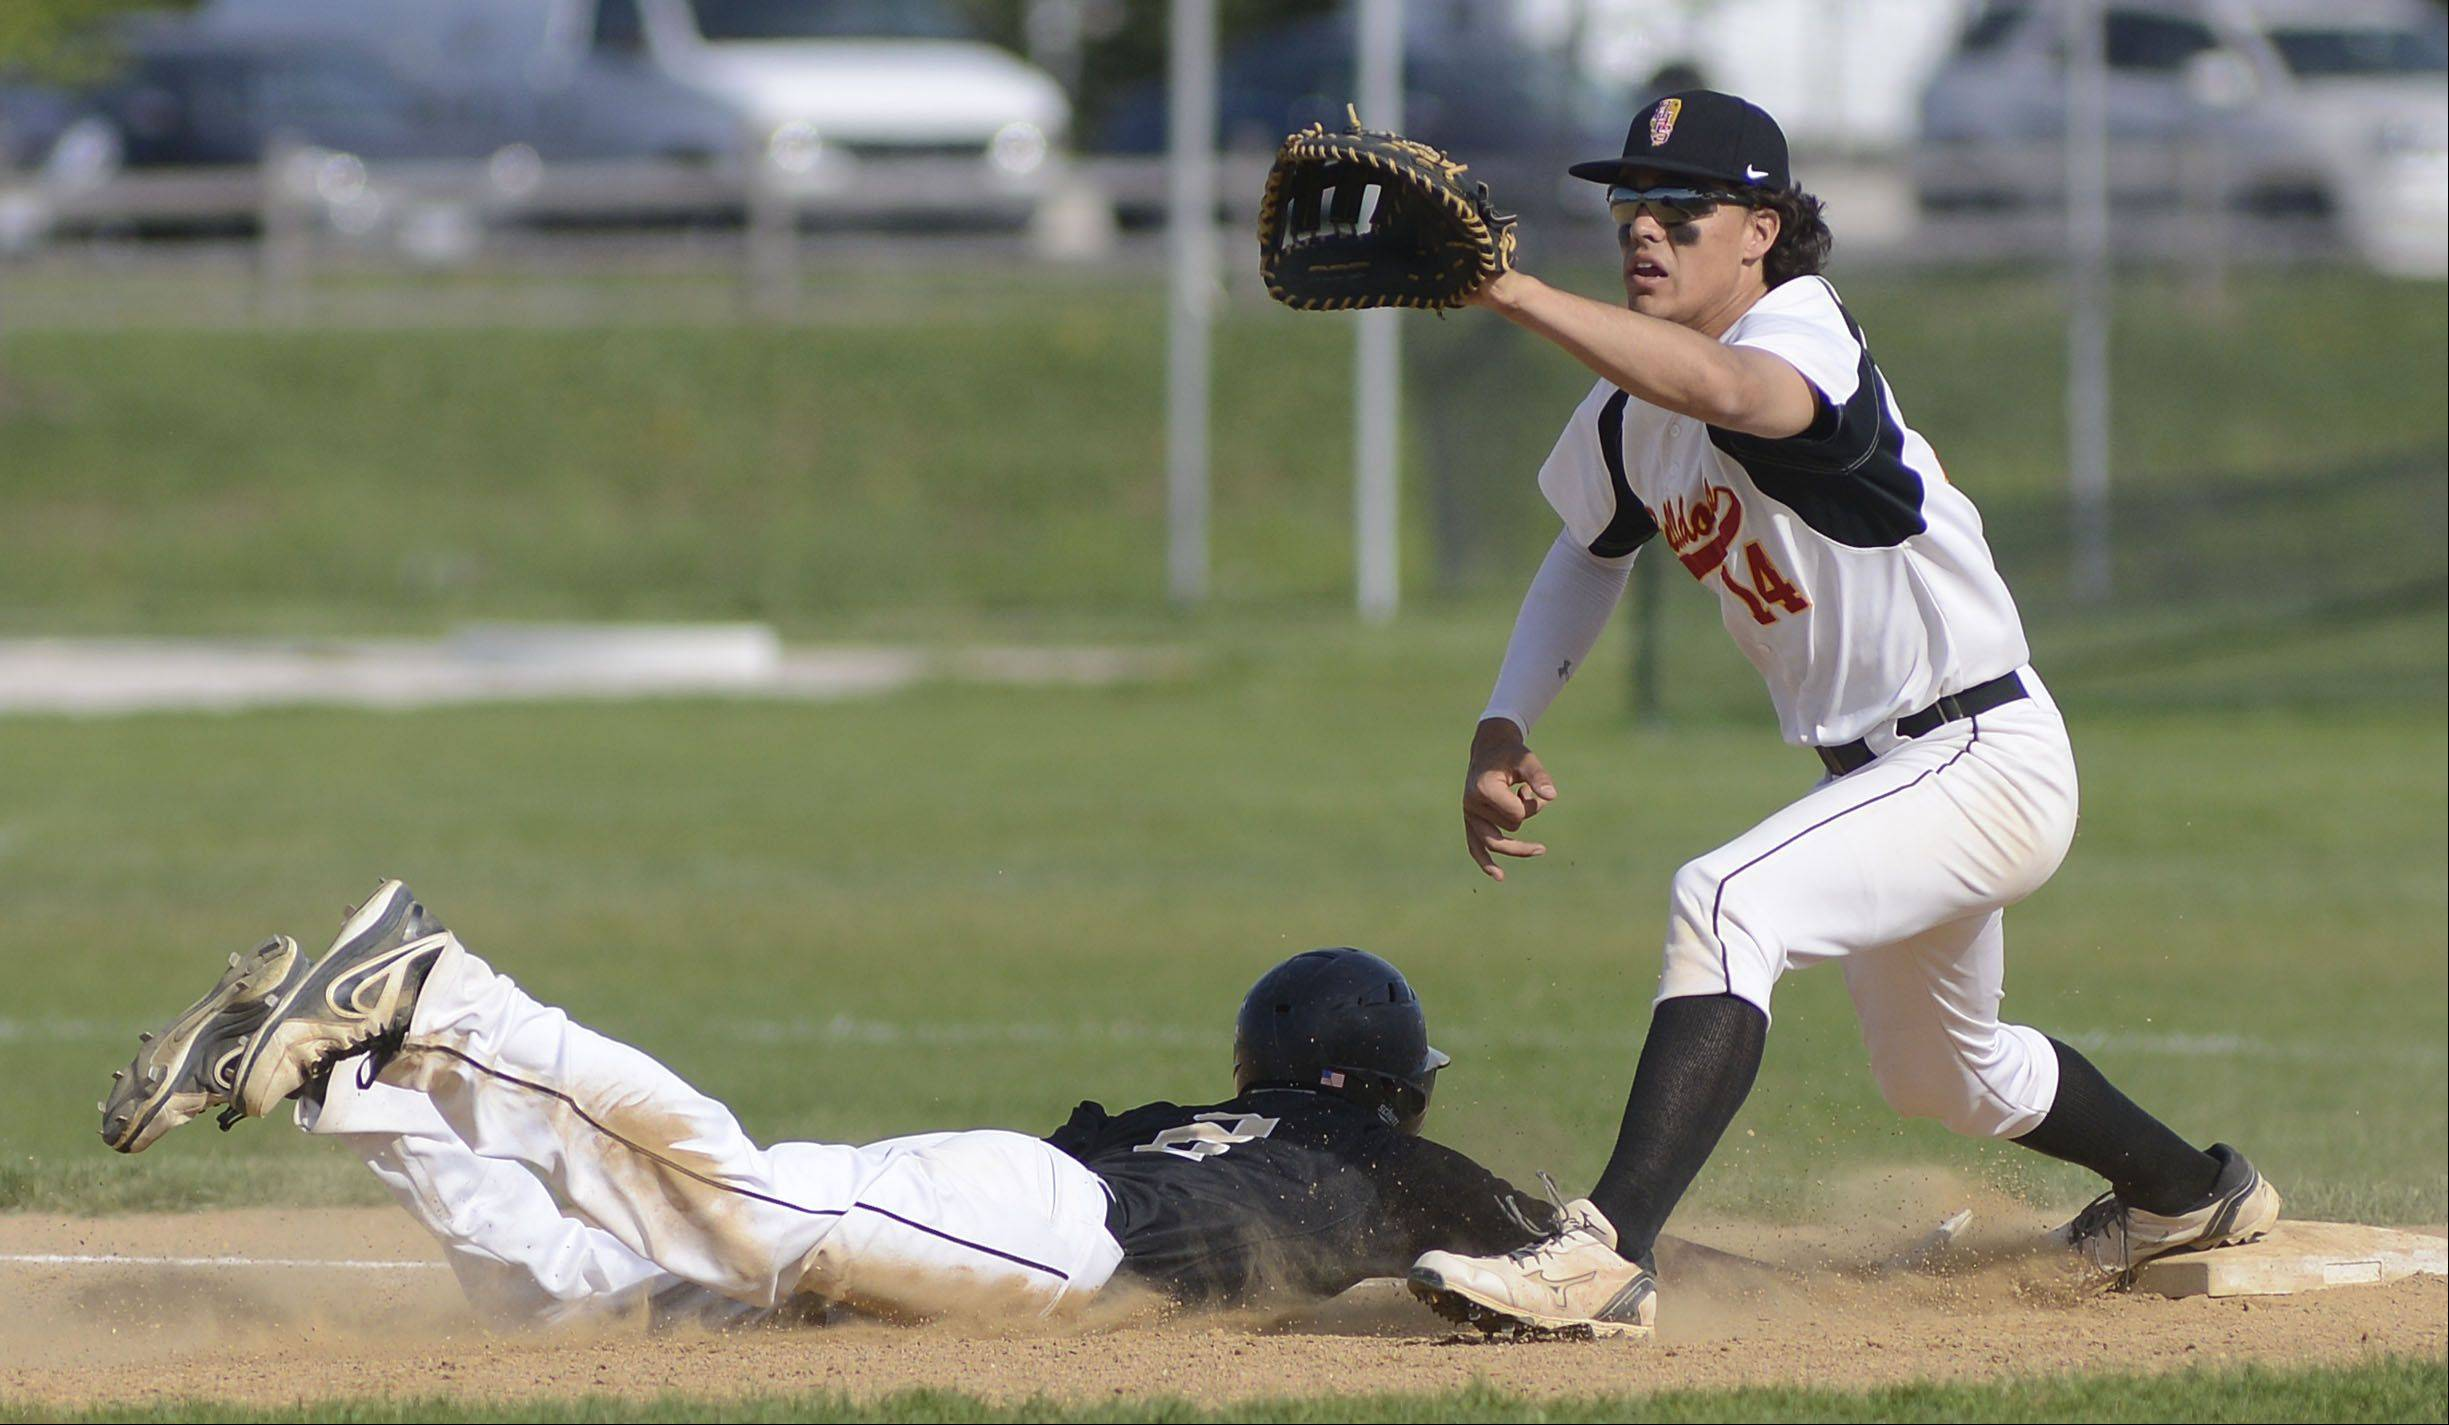 Streamwood's Matt Harding is safe back on first with a slide from Batavia's Micah Coffey in the first inning on Wednesday, May 15.